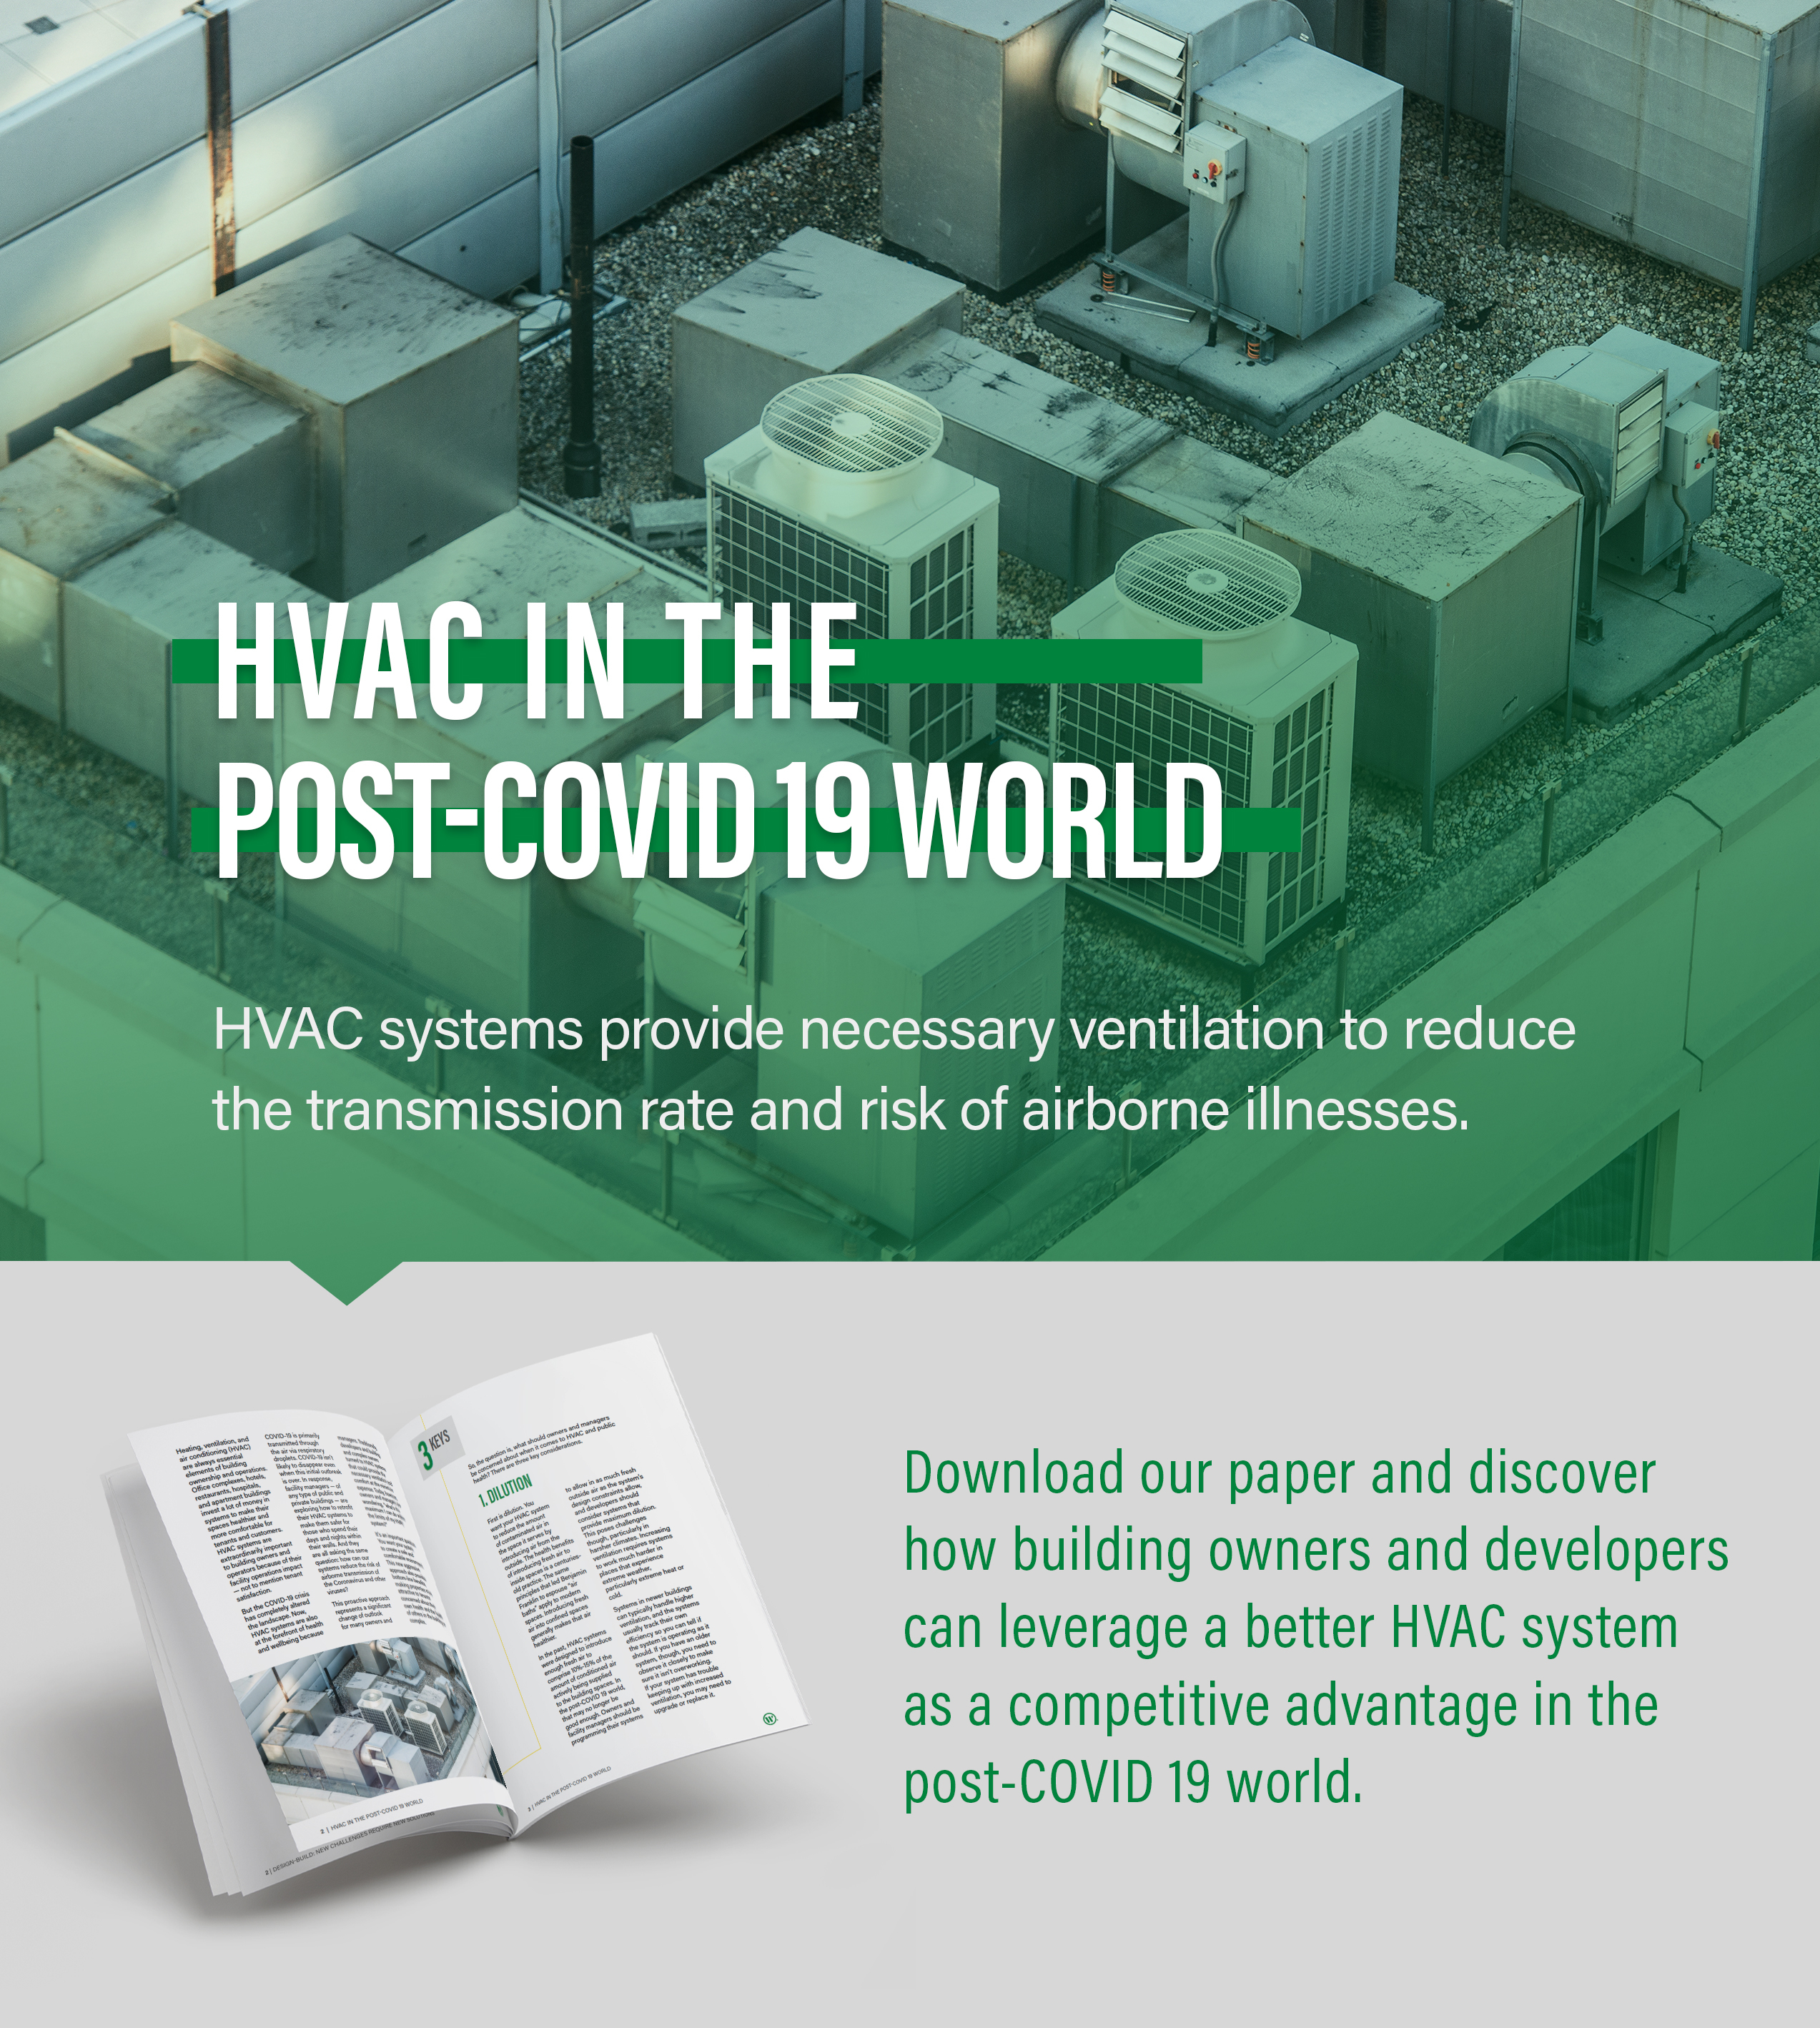 HVAC in the post-COVID 19 world. Download our paper.